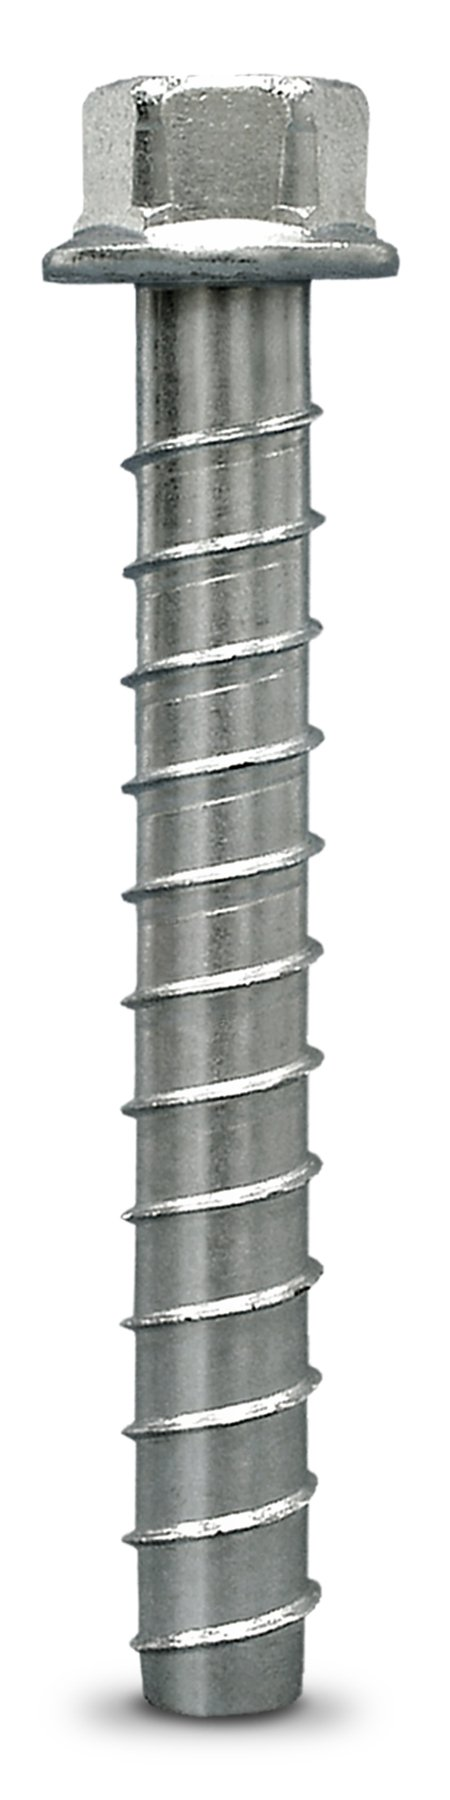 Simpson Strong Tie THD37300H 3/8-Inch by 3-Inch Titen HD Zinc Plated Heavy Duty Screw Anchor for Concrete/Masonry, 50 per Pack